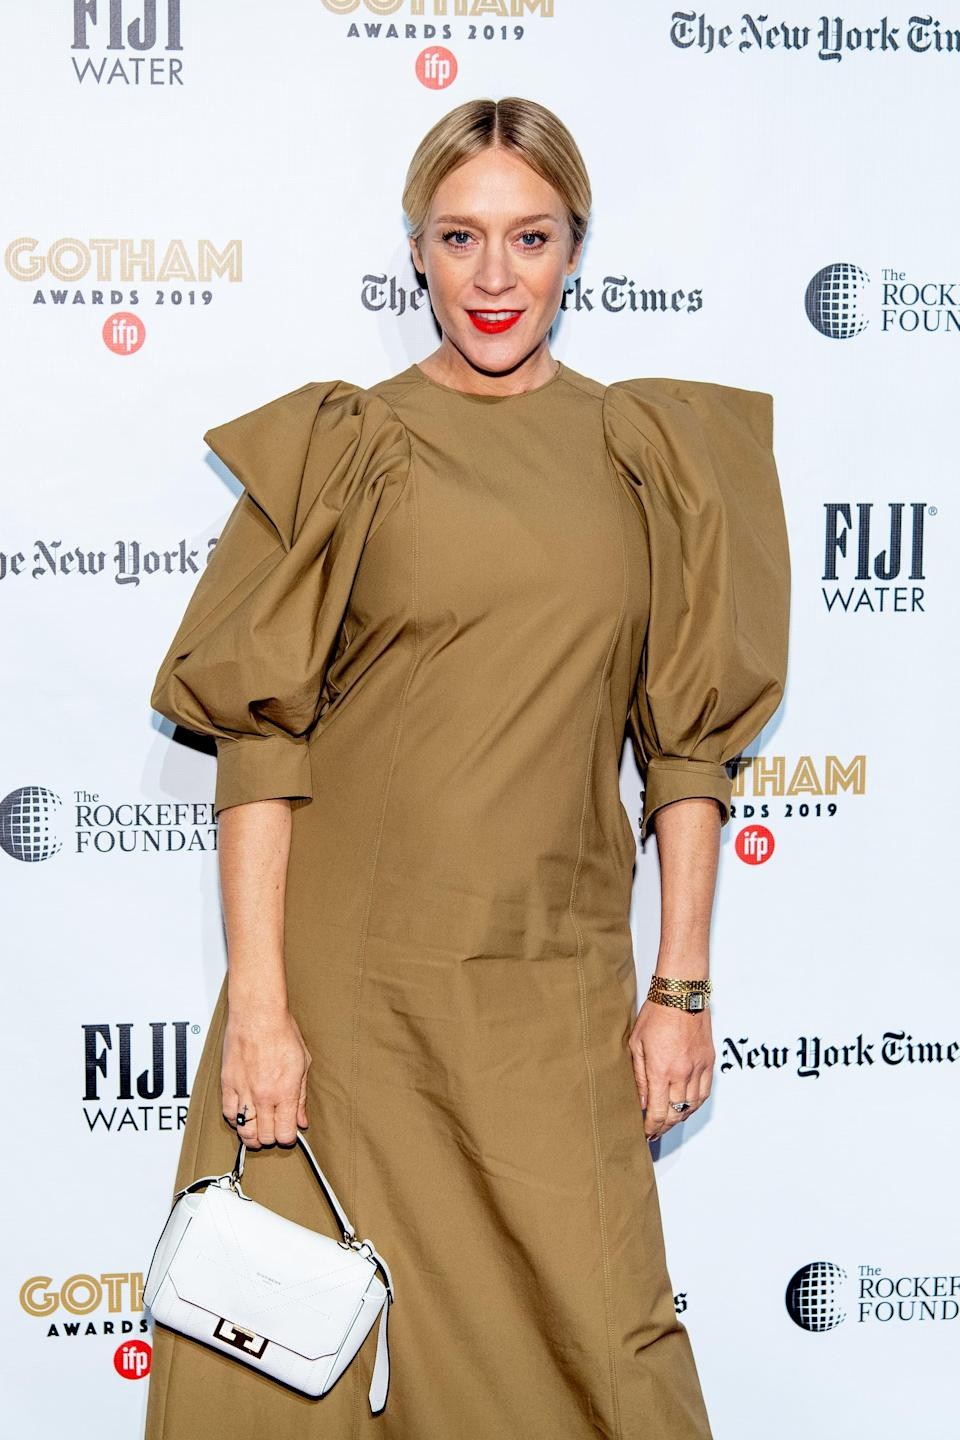 "<p><a href=""https://people.com/parents/chloe-sevigny-pregnant-expecting-first-child-boyfriend-sinisa-mackovic/"" class=""link rapid-noclick-resp"" rel=""nofollow noopener"" target=""_blank"" data-ylk=""slk:The actress is pregnant"">The actress is pregnant</a> with her first child! <strong>Chloë</strong>'s rep confirmed the exciting news to <strong>People</strong> in January. The couple has been dating for over a year. </p>"